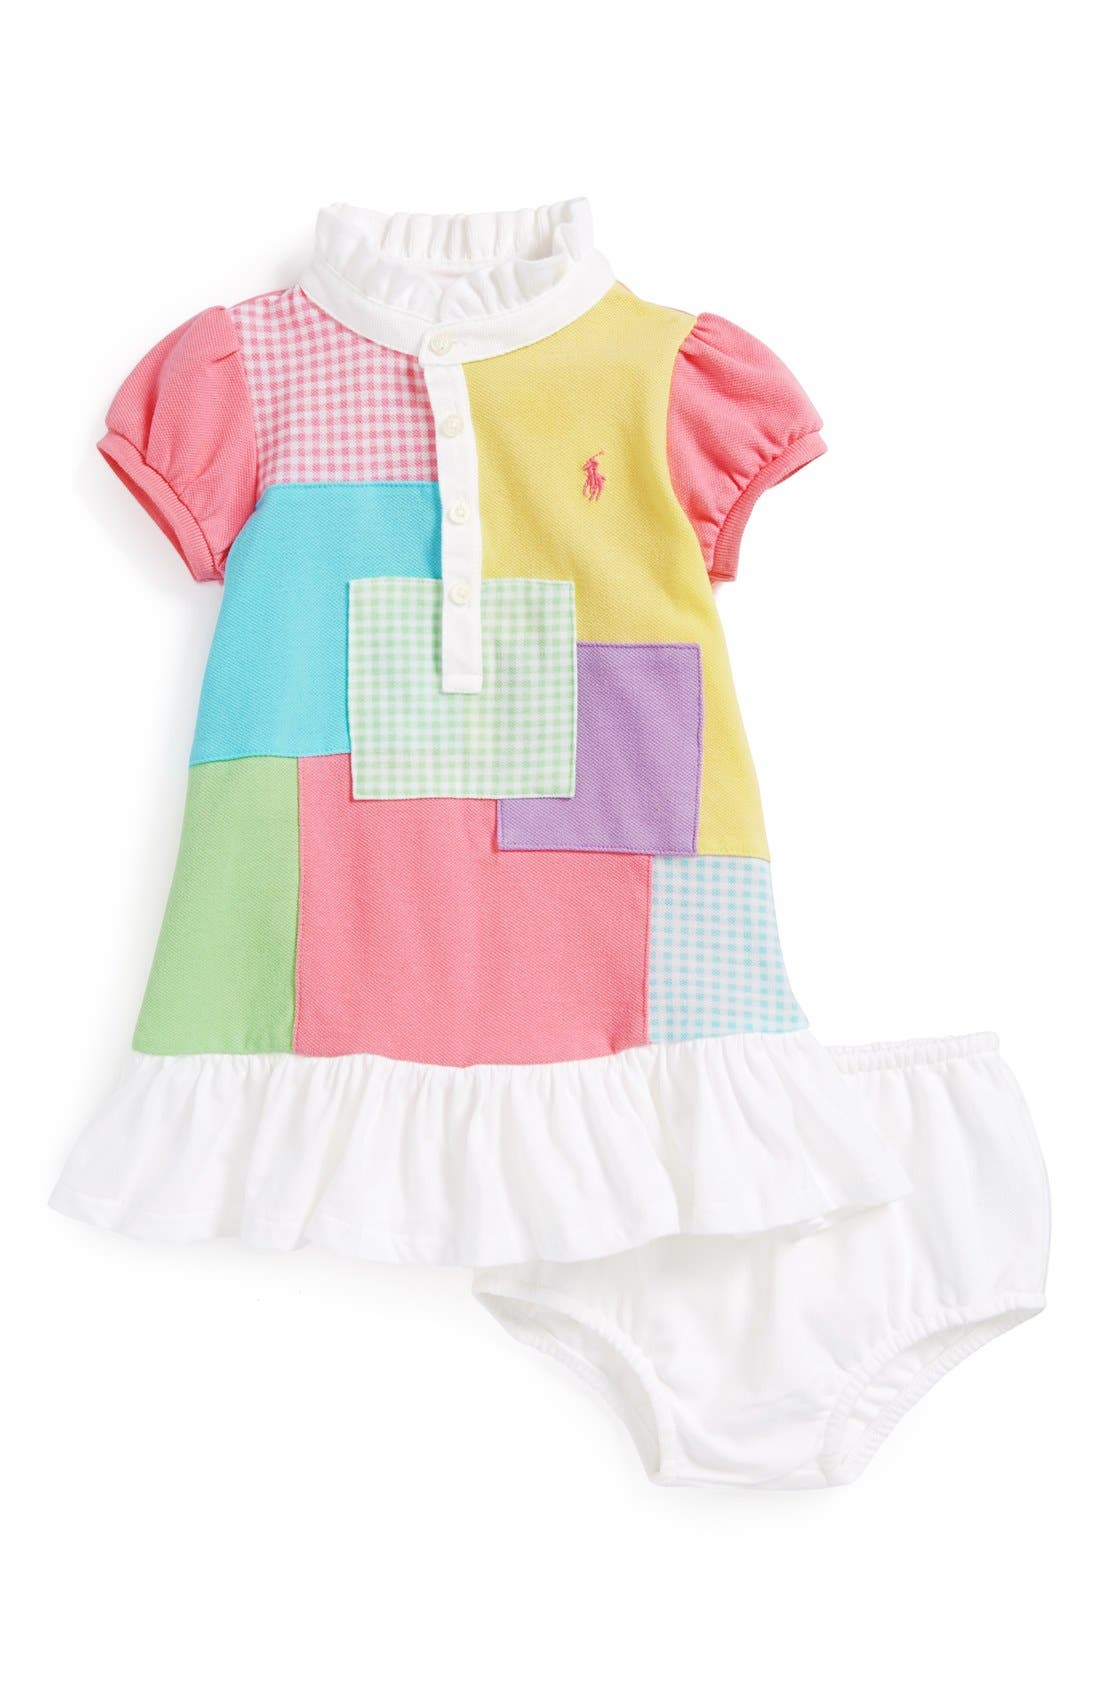 Main Image - Ralph Lauren Patchwork Dress & Bloomers (Baby Girls)